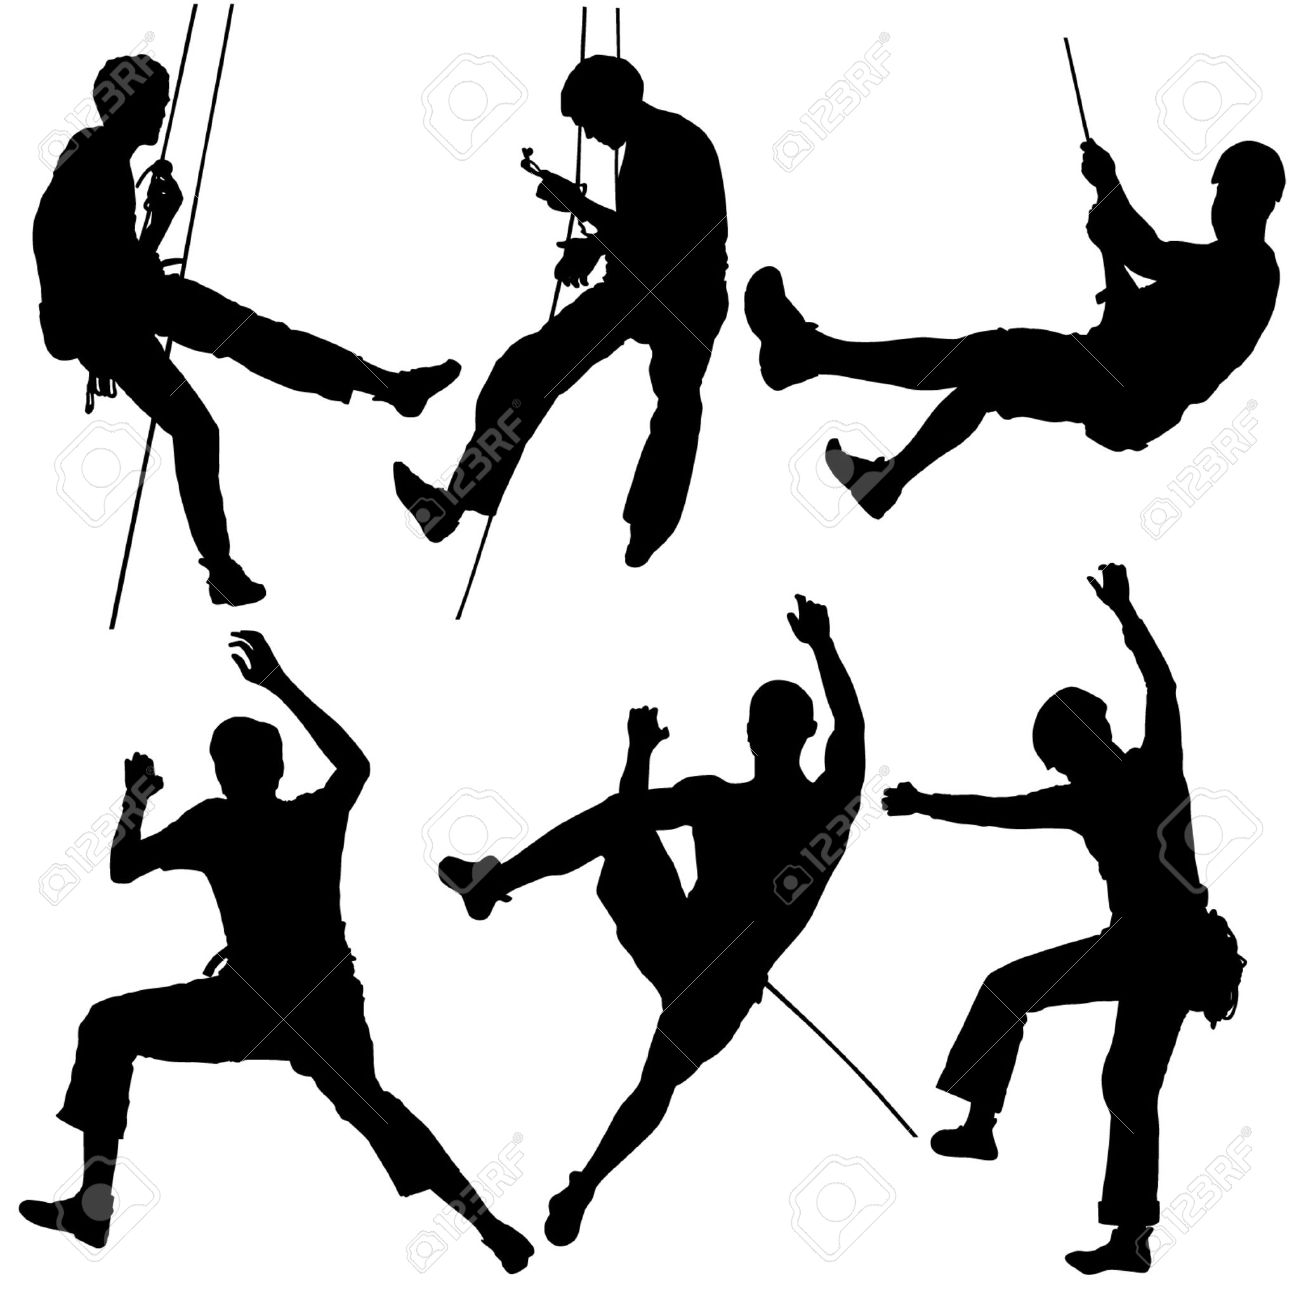 1294x1300 Rock Climber Silhouette On White Background Royalty Free Cliparts